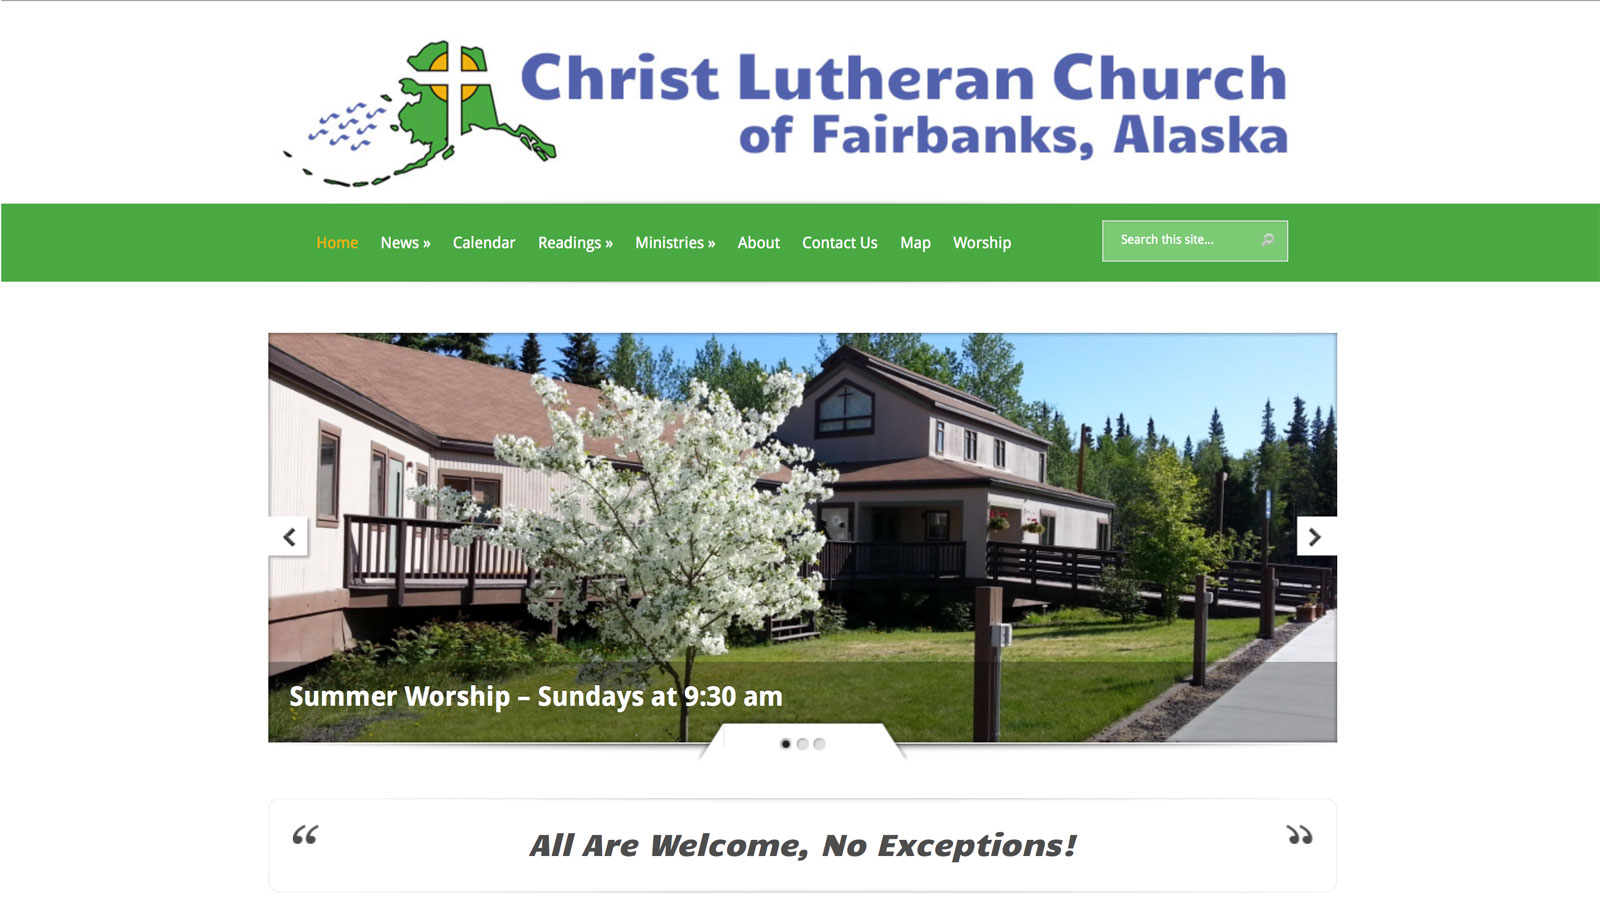 christlutheranfairbanks